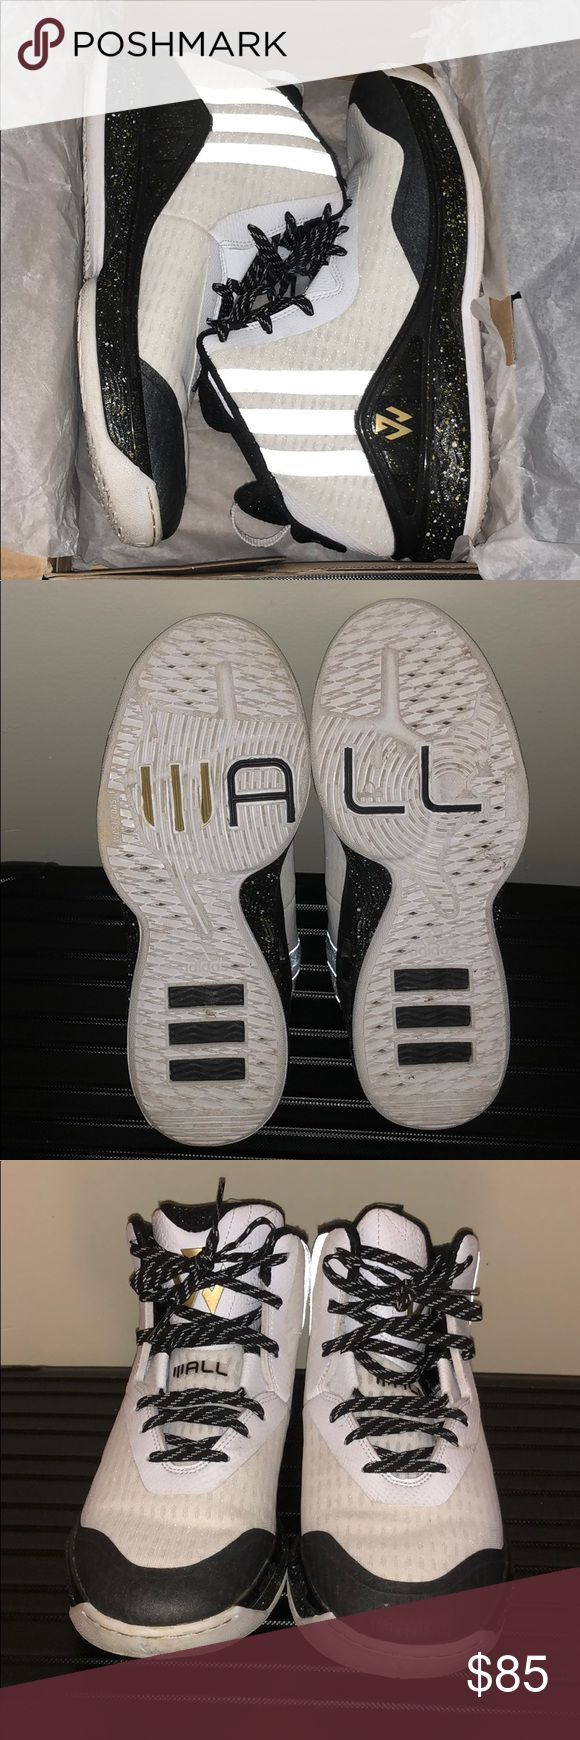 Adidas John Wall All Star Shoes White/Black/Gold John Wall All Star Shoes size 9. Only worn twice. adidas Shoes Athletic Shoes